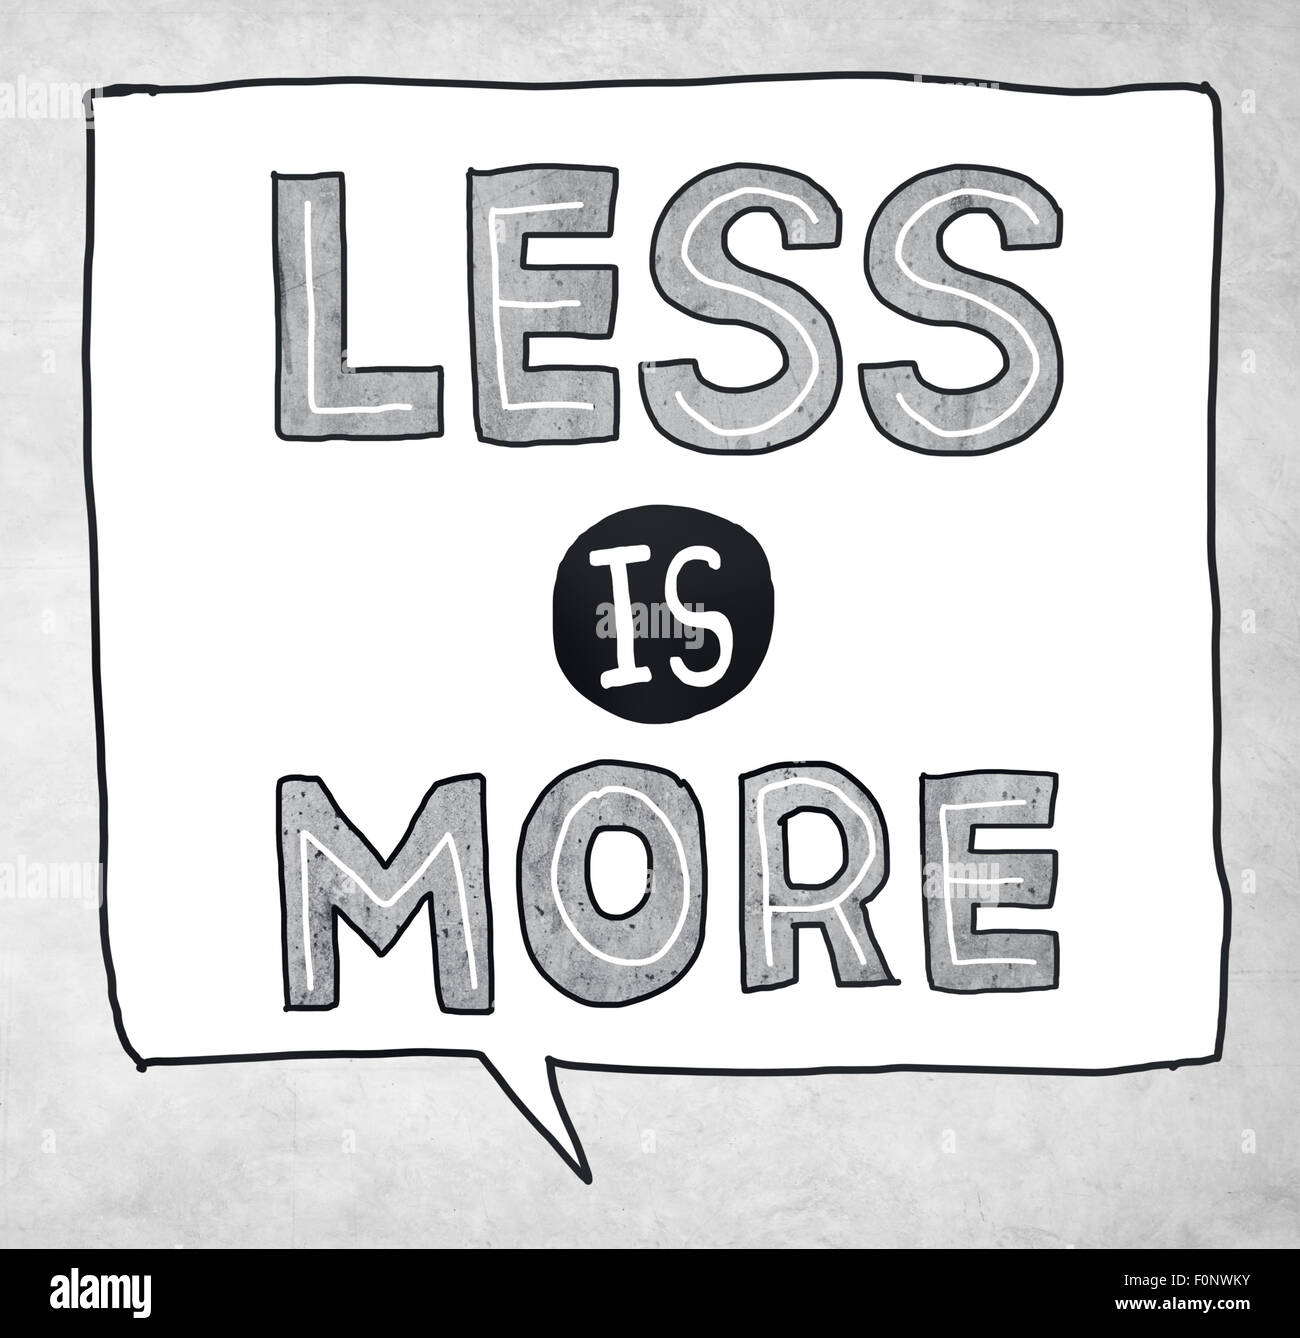 Less is More Minimal Simplicity Efficient Complexity Concept - Stock Image